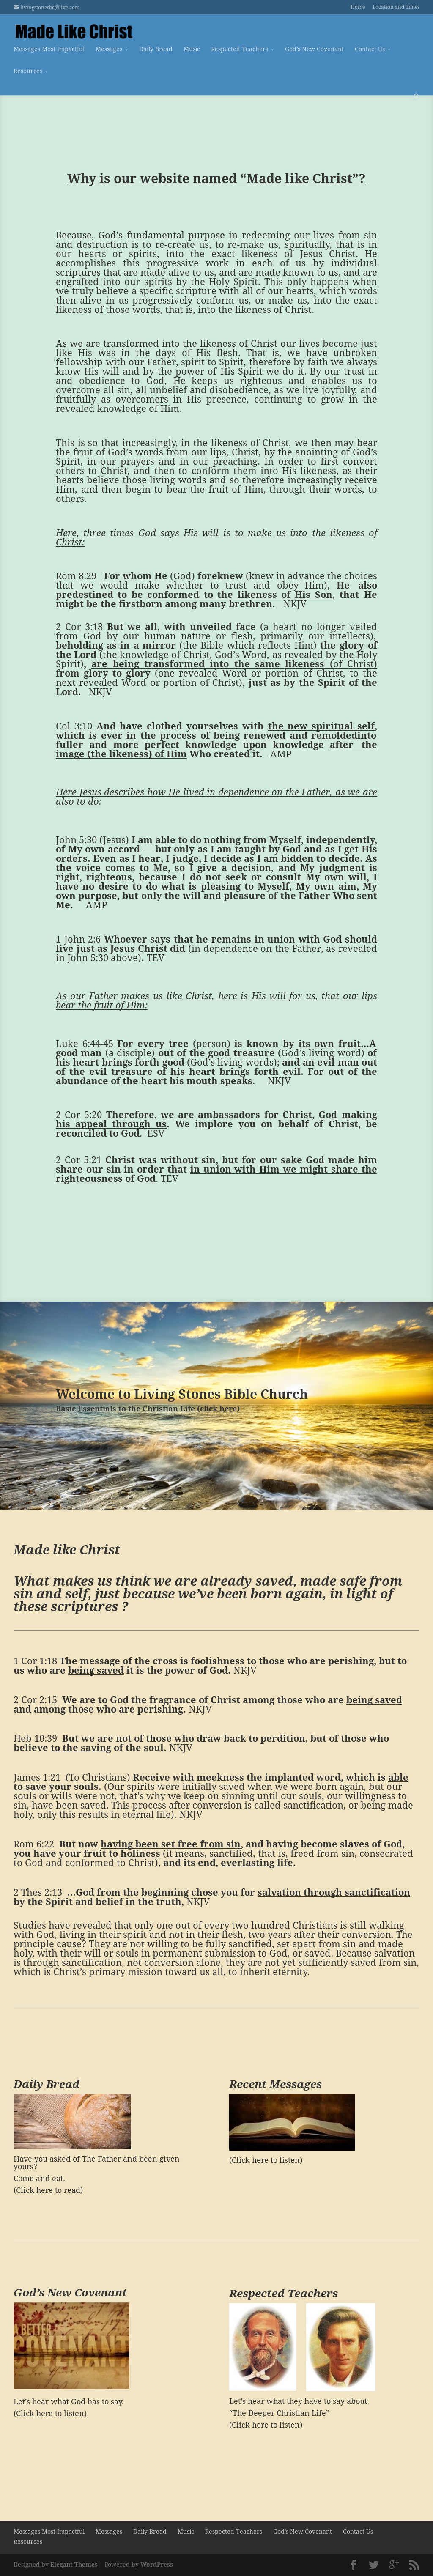 Living Stones Bible Church Competitors, Revenue and